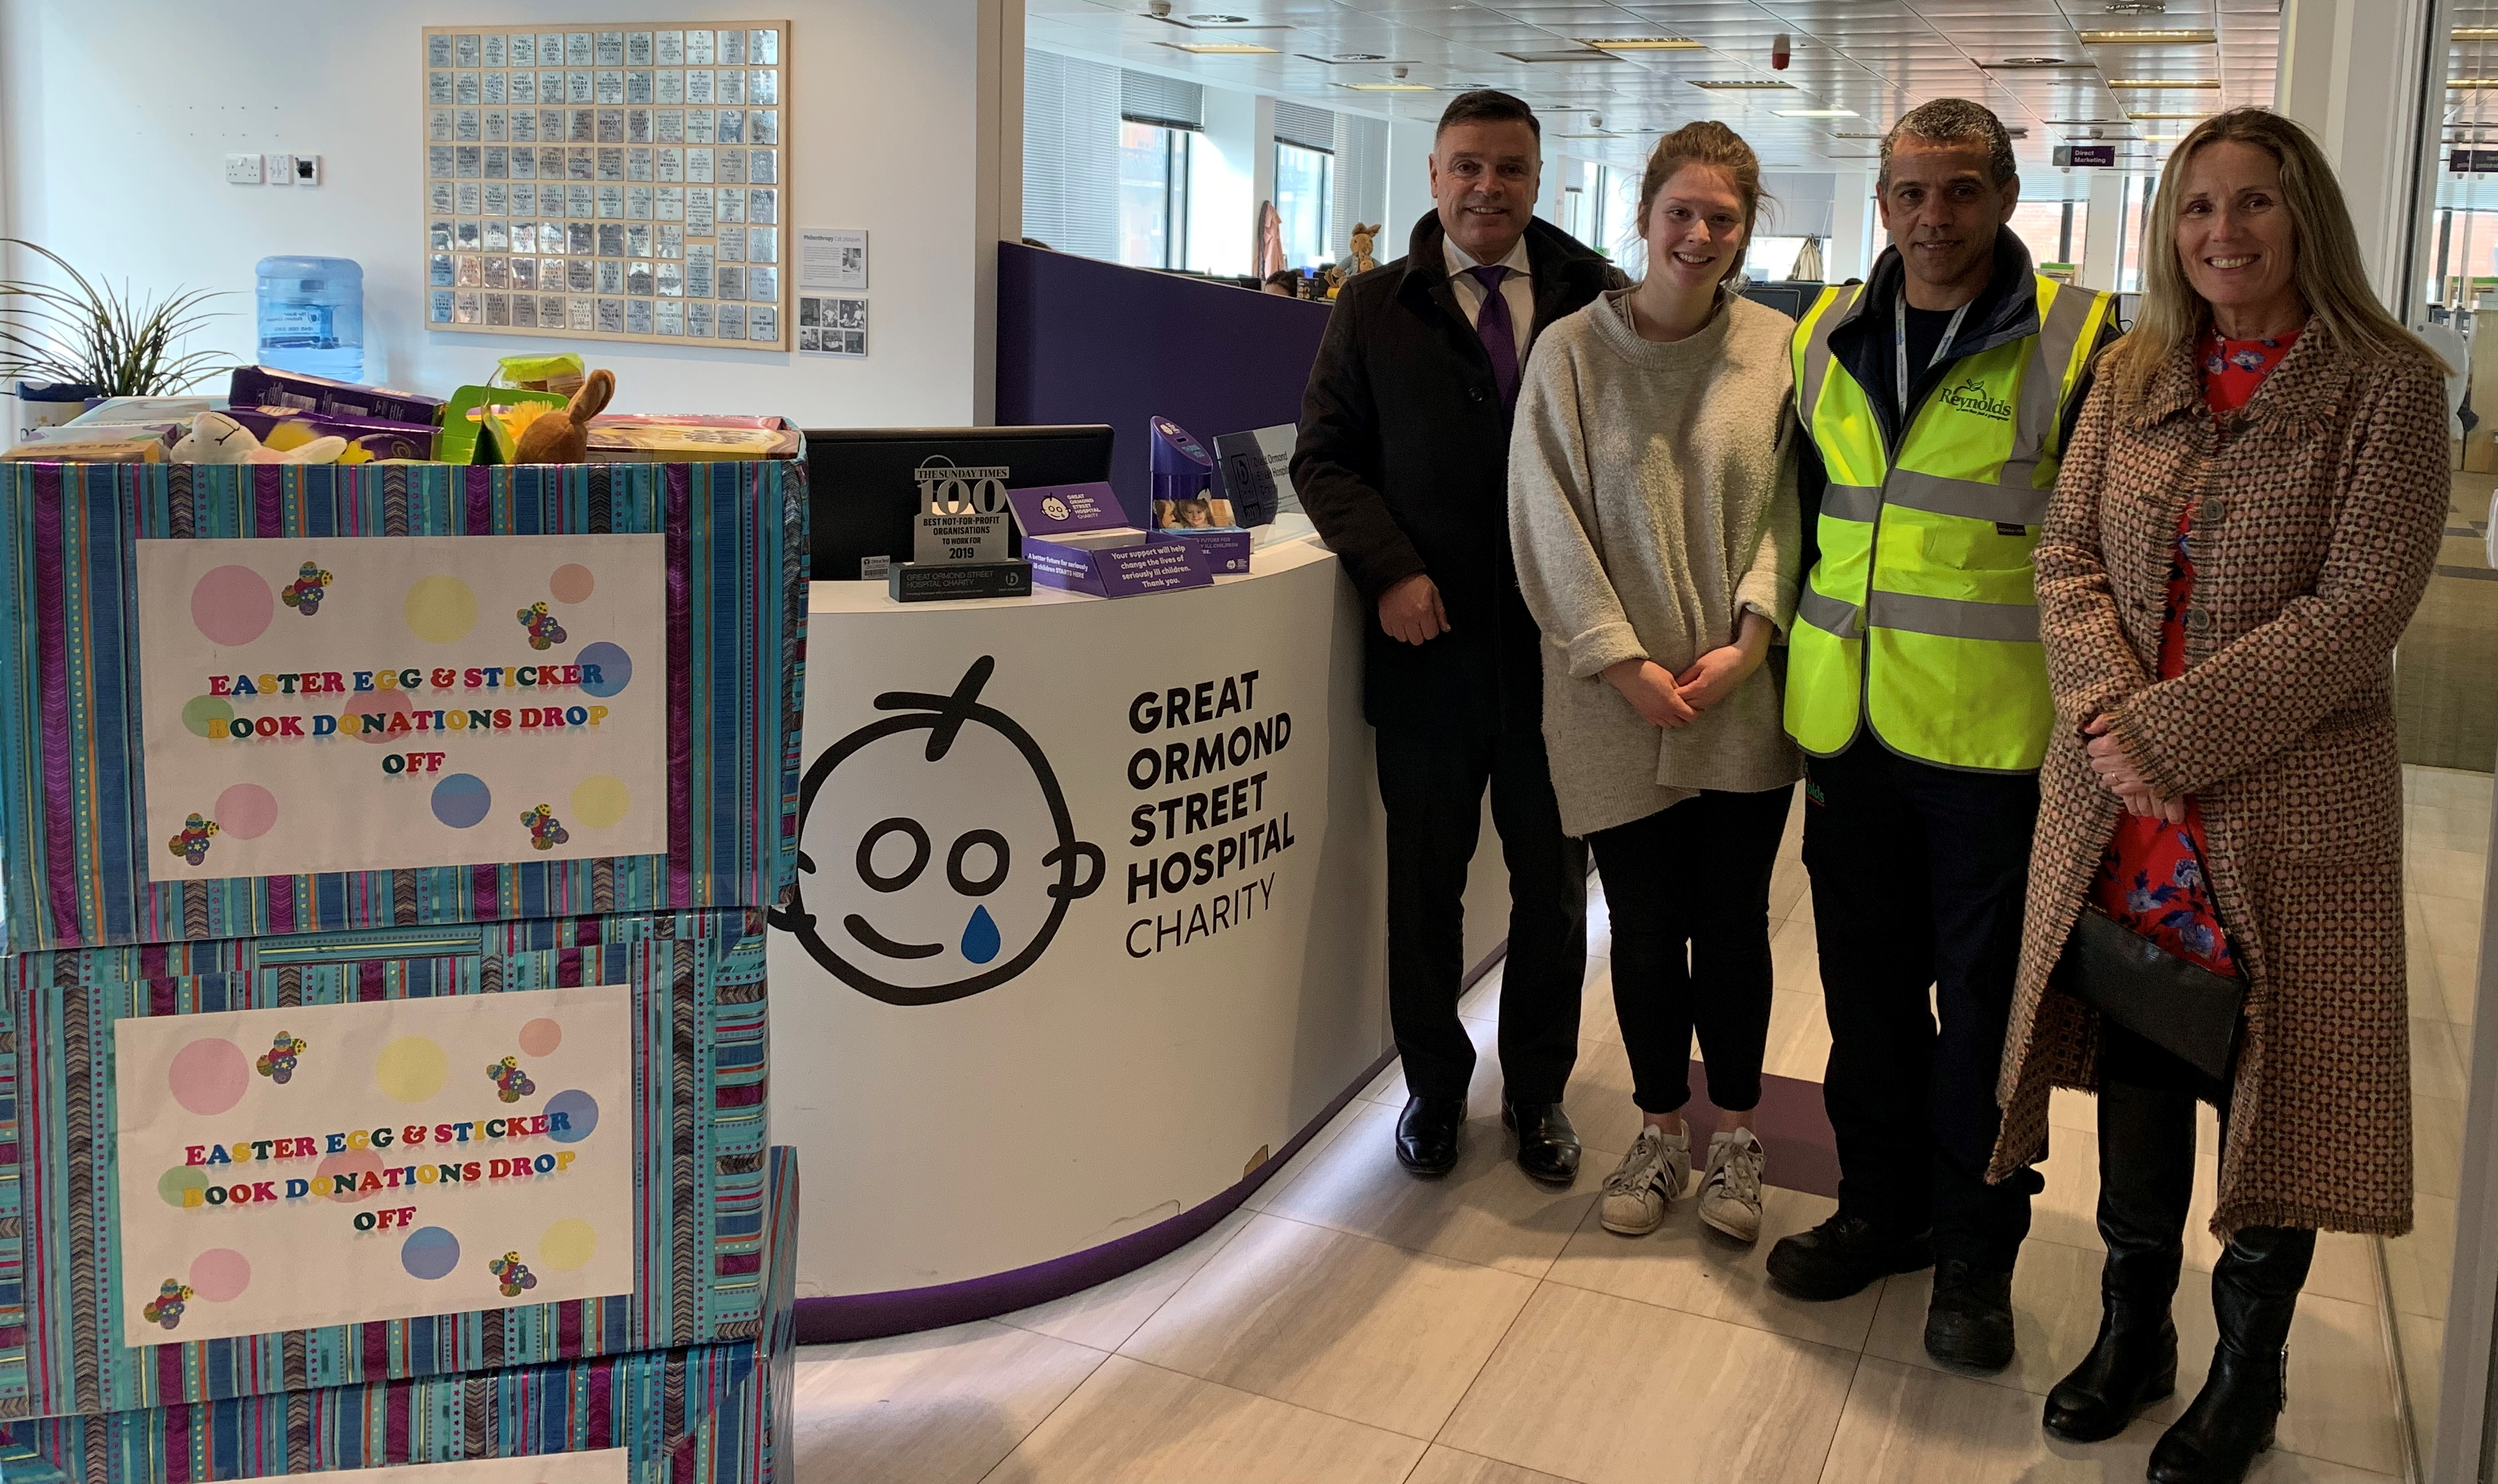 Reynolds delivers Easter treats to GOSH Charity